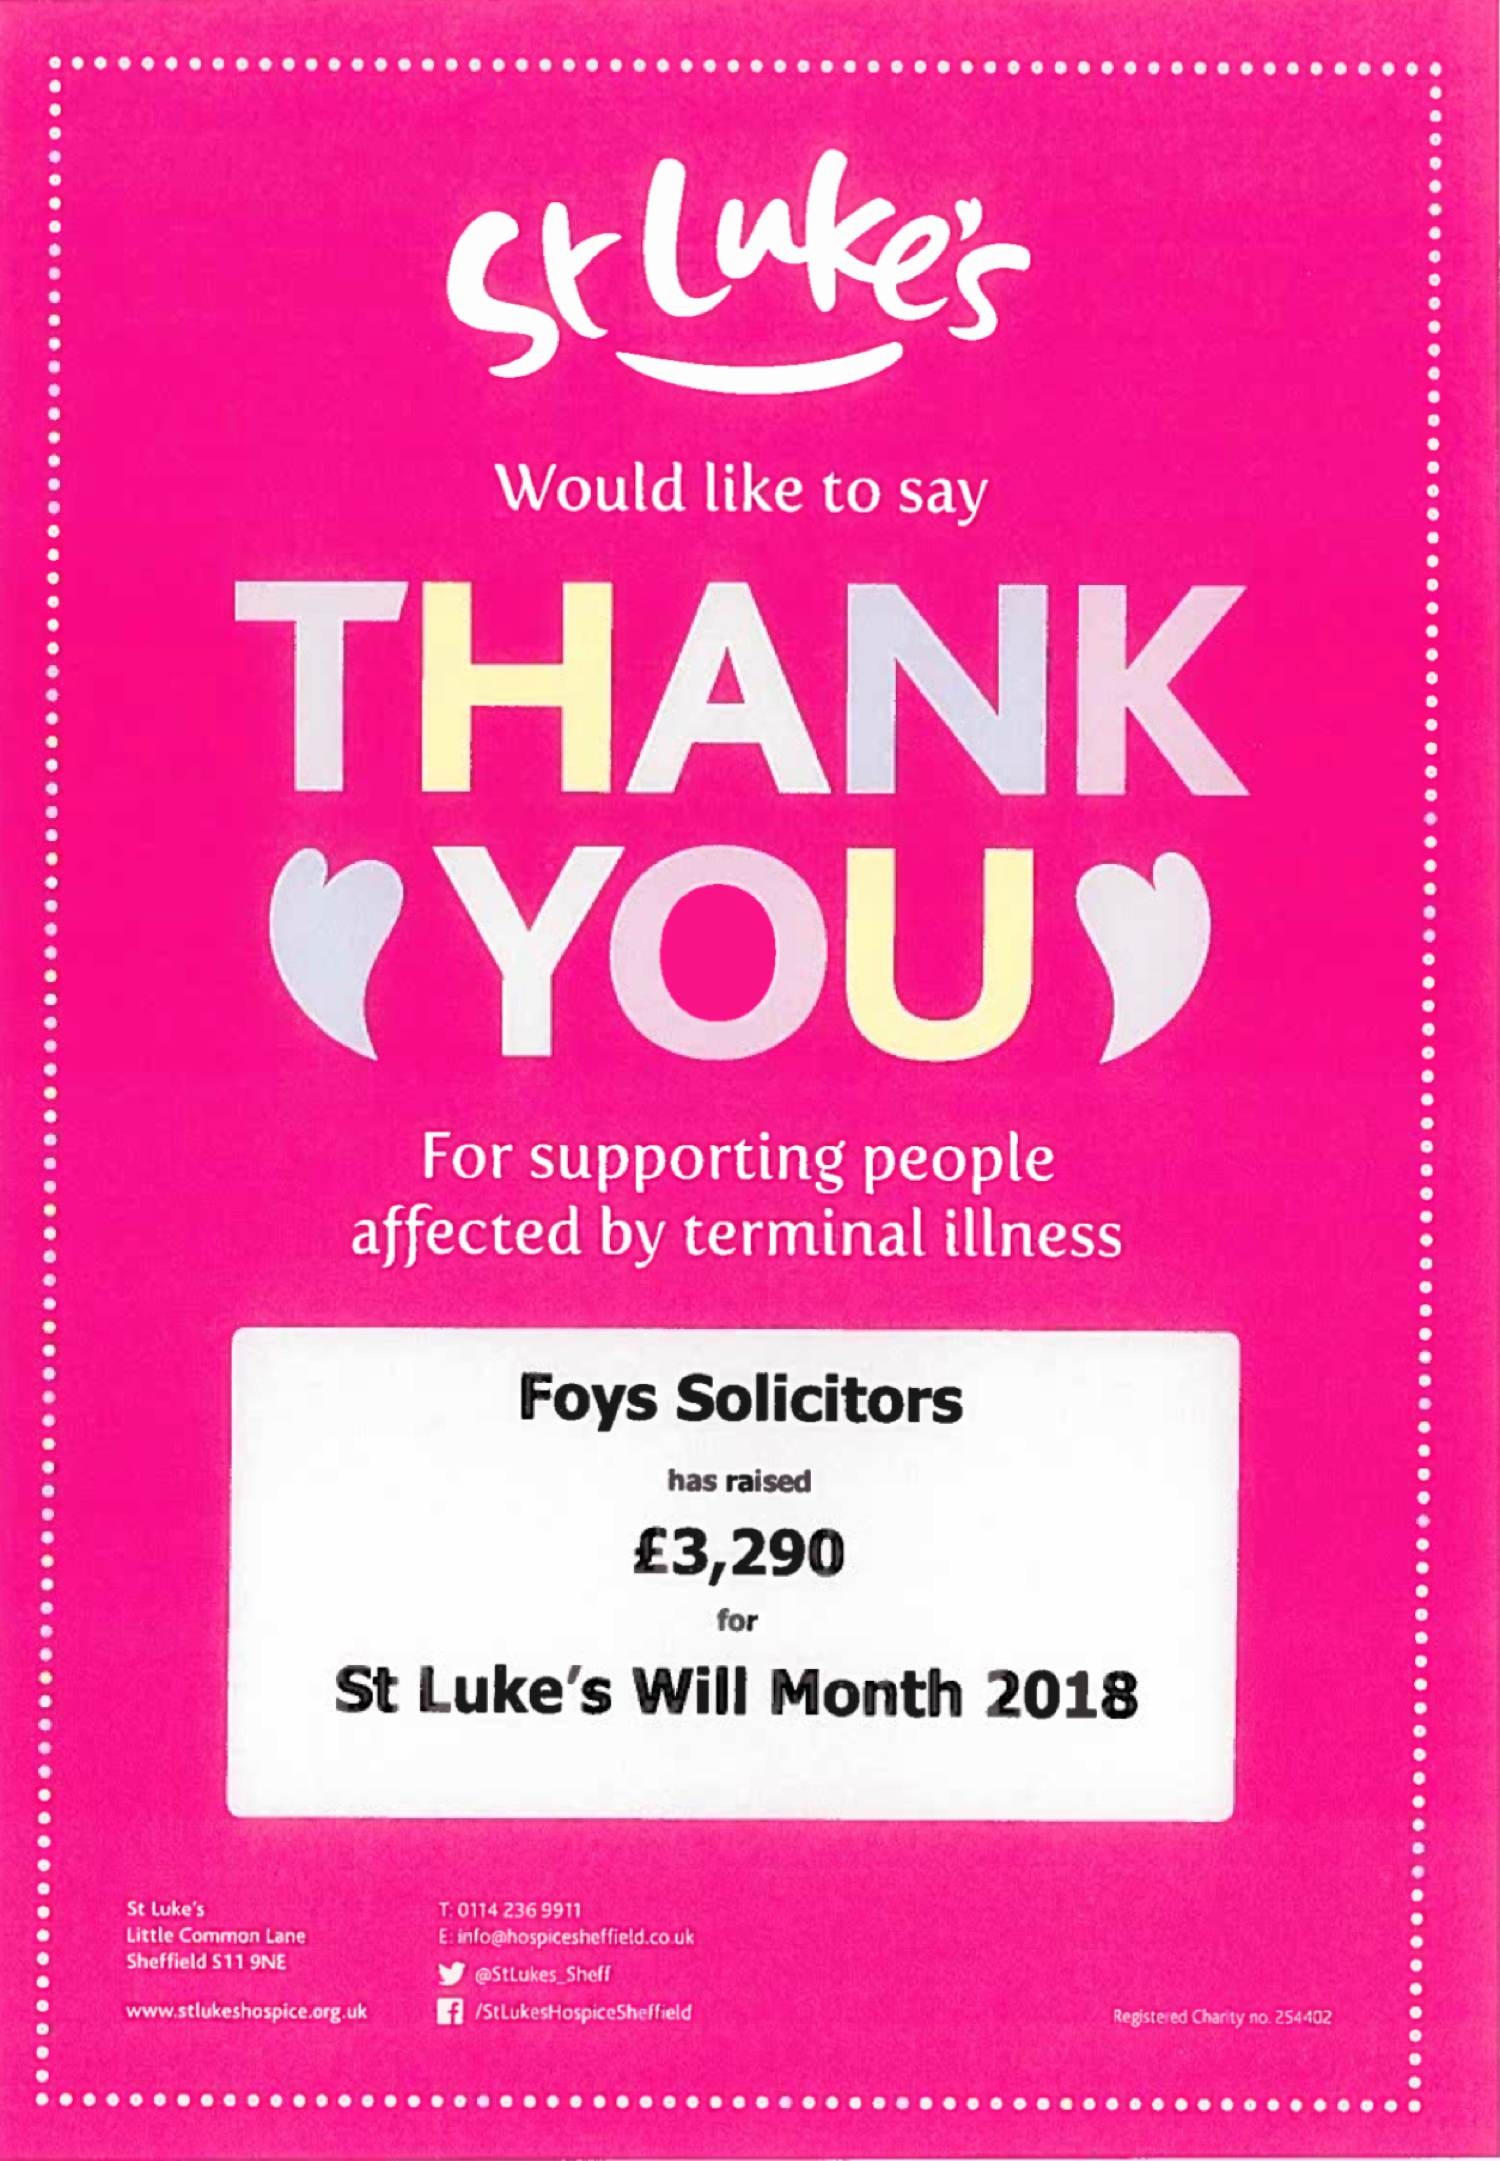 A thank you post from St Luke's Hospice